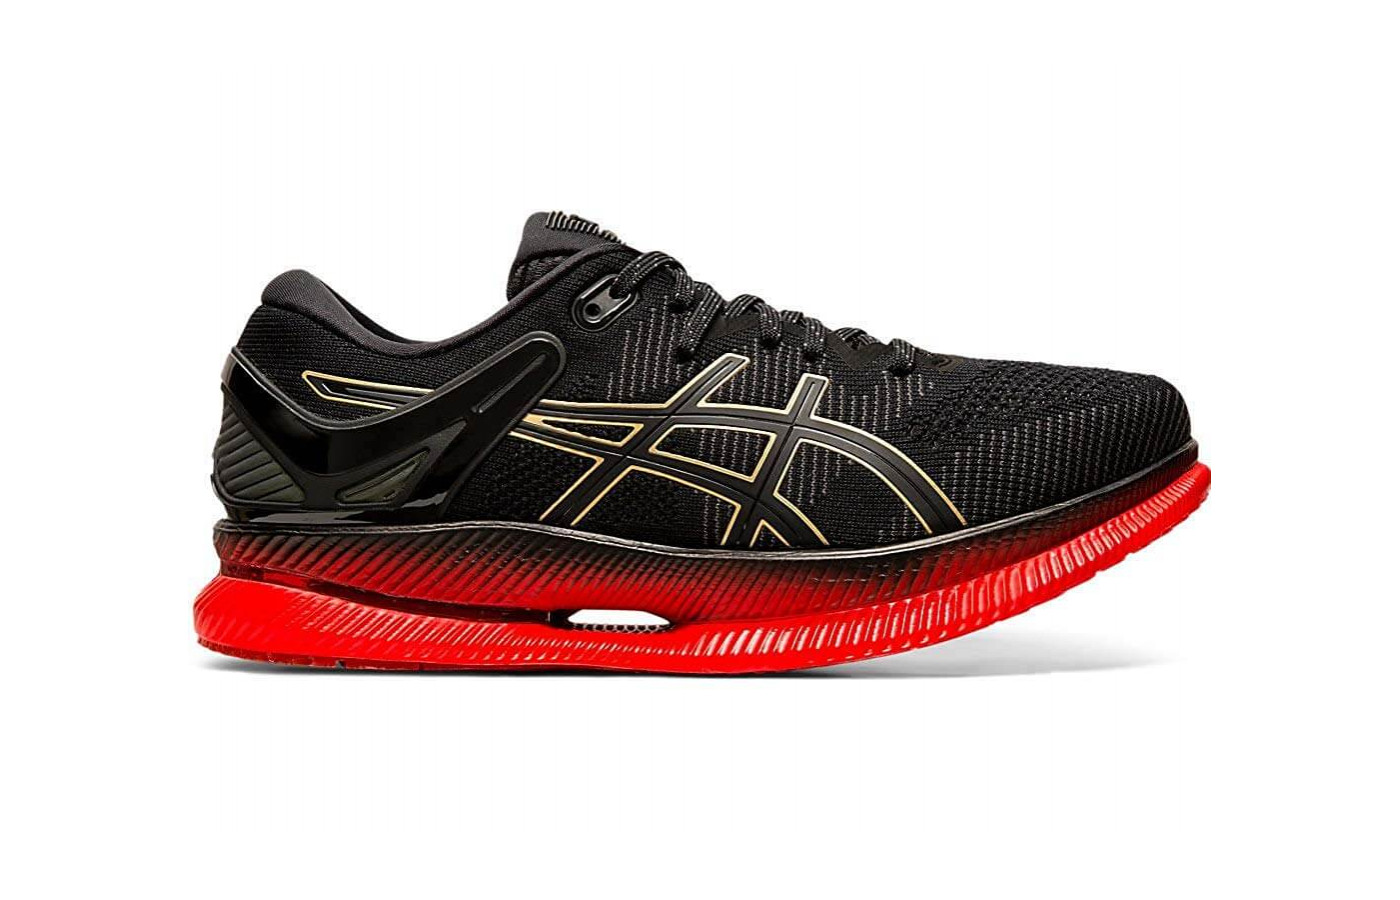 An in depth review of ASICS MetaRide